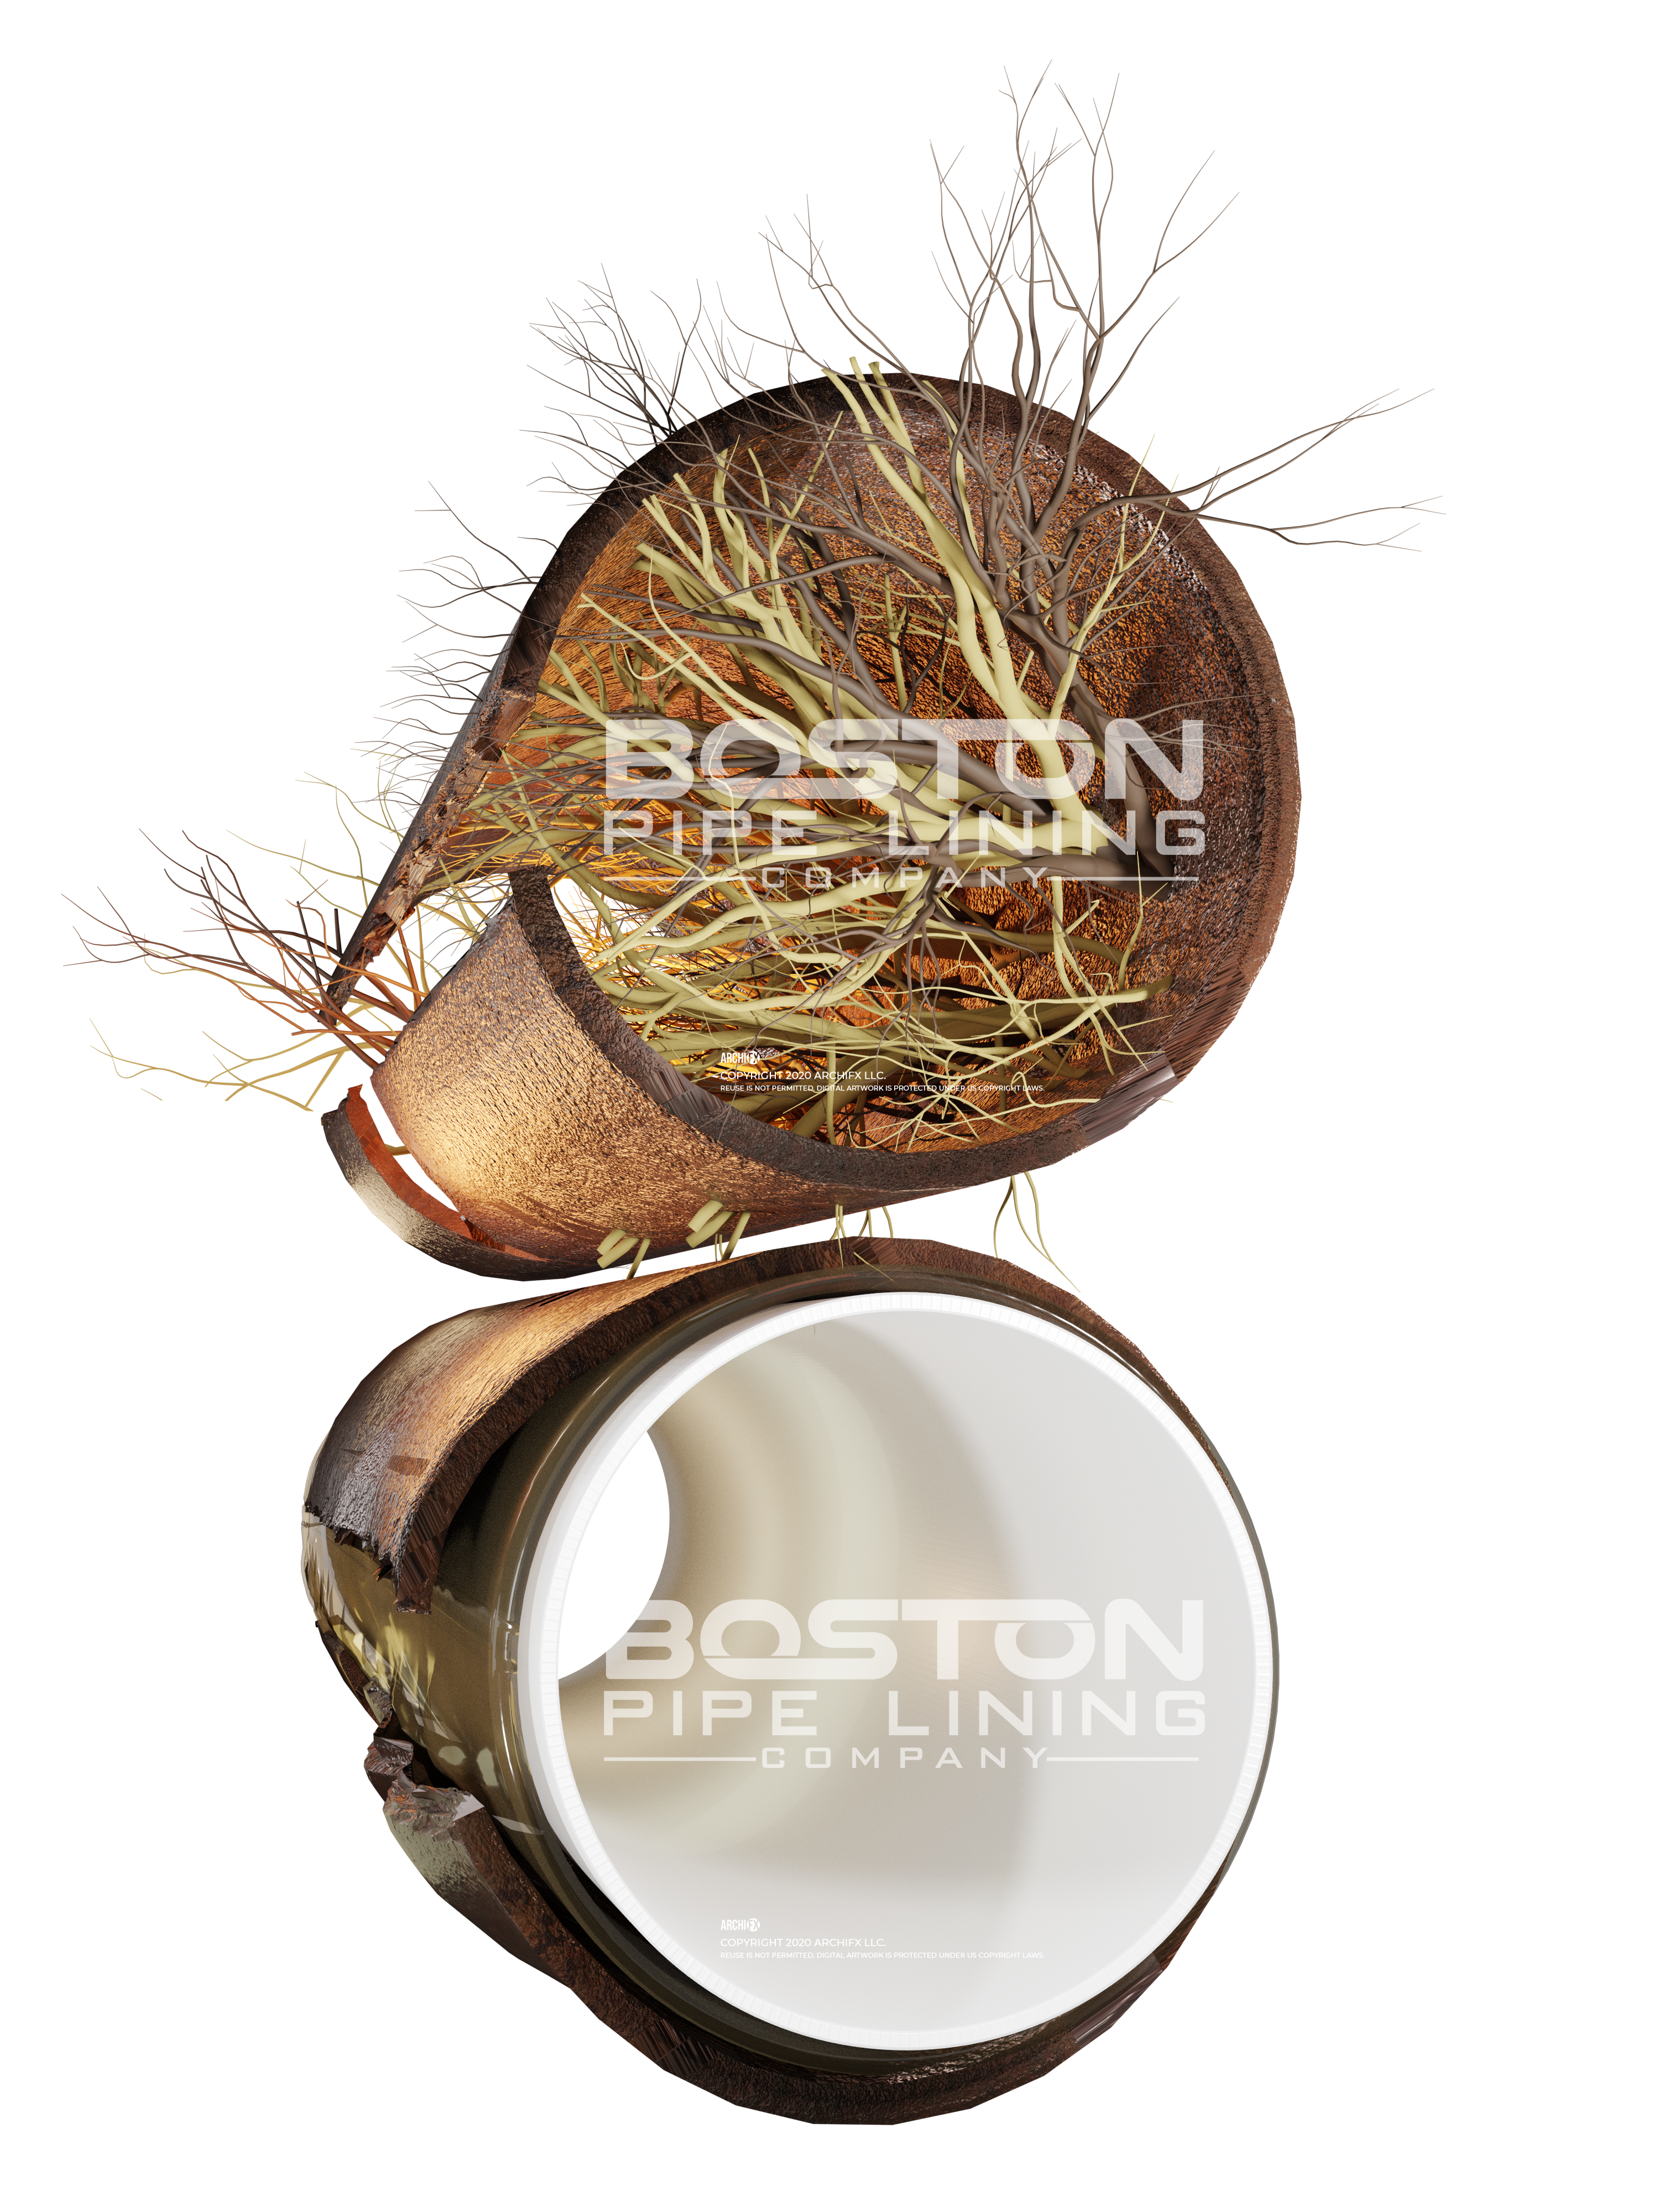 before-after-pipelining-cipp-boston